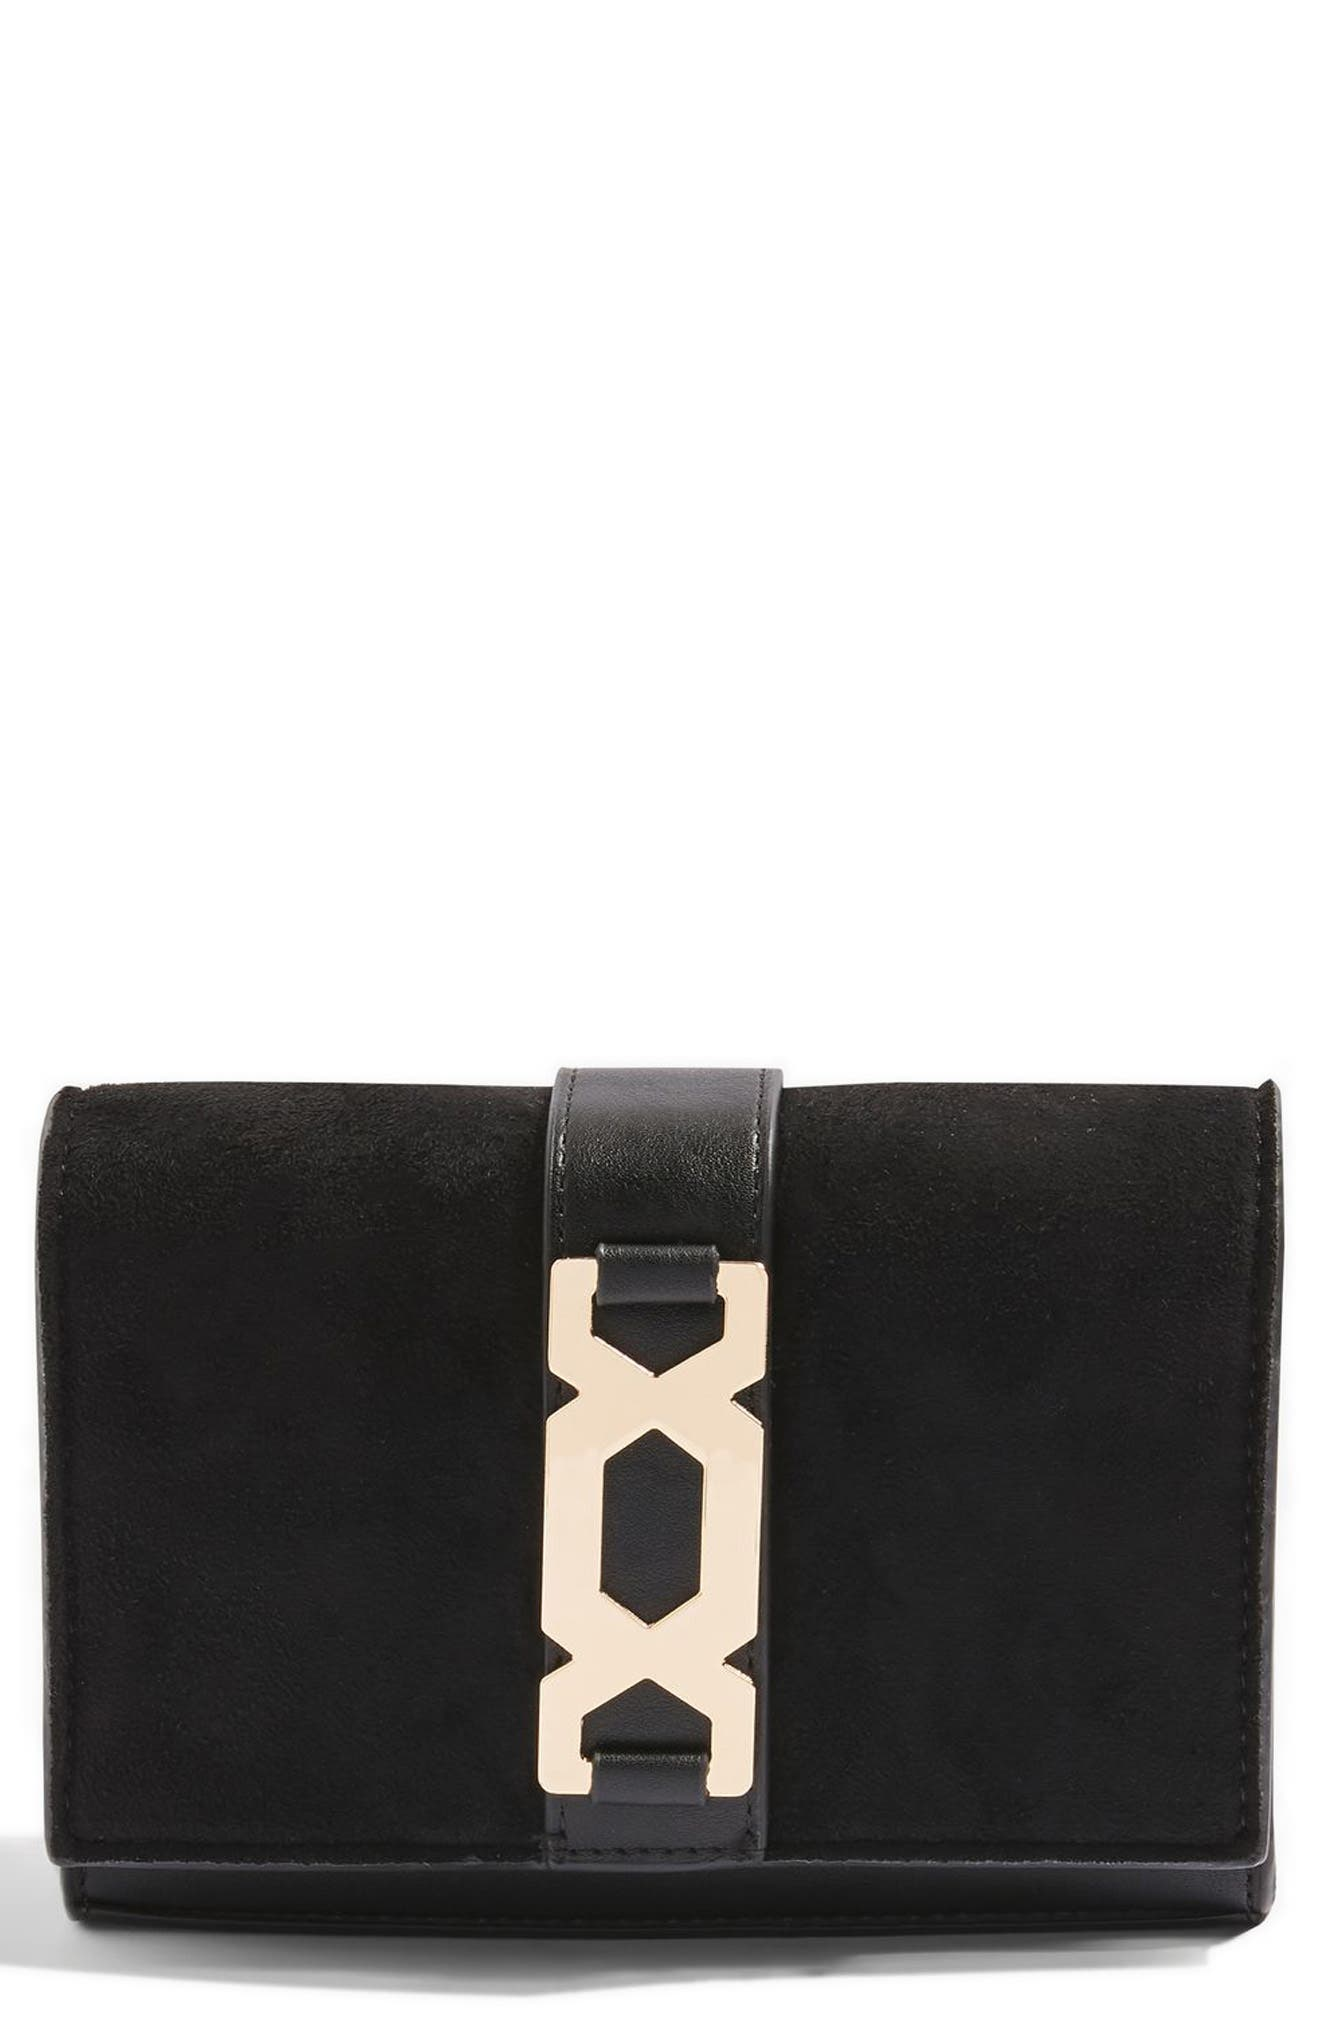 TOPSHOP,                             Rome Hex Hardware Crossbody Bag,                             Main thumbnail 1, color,                             001